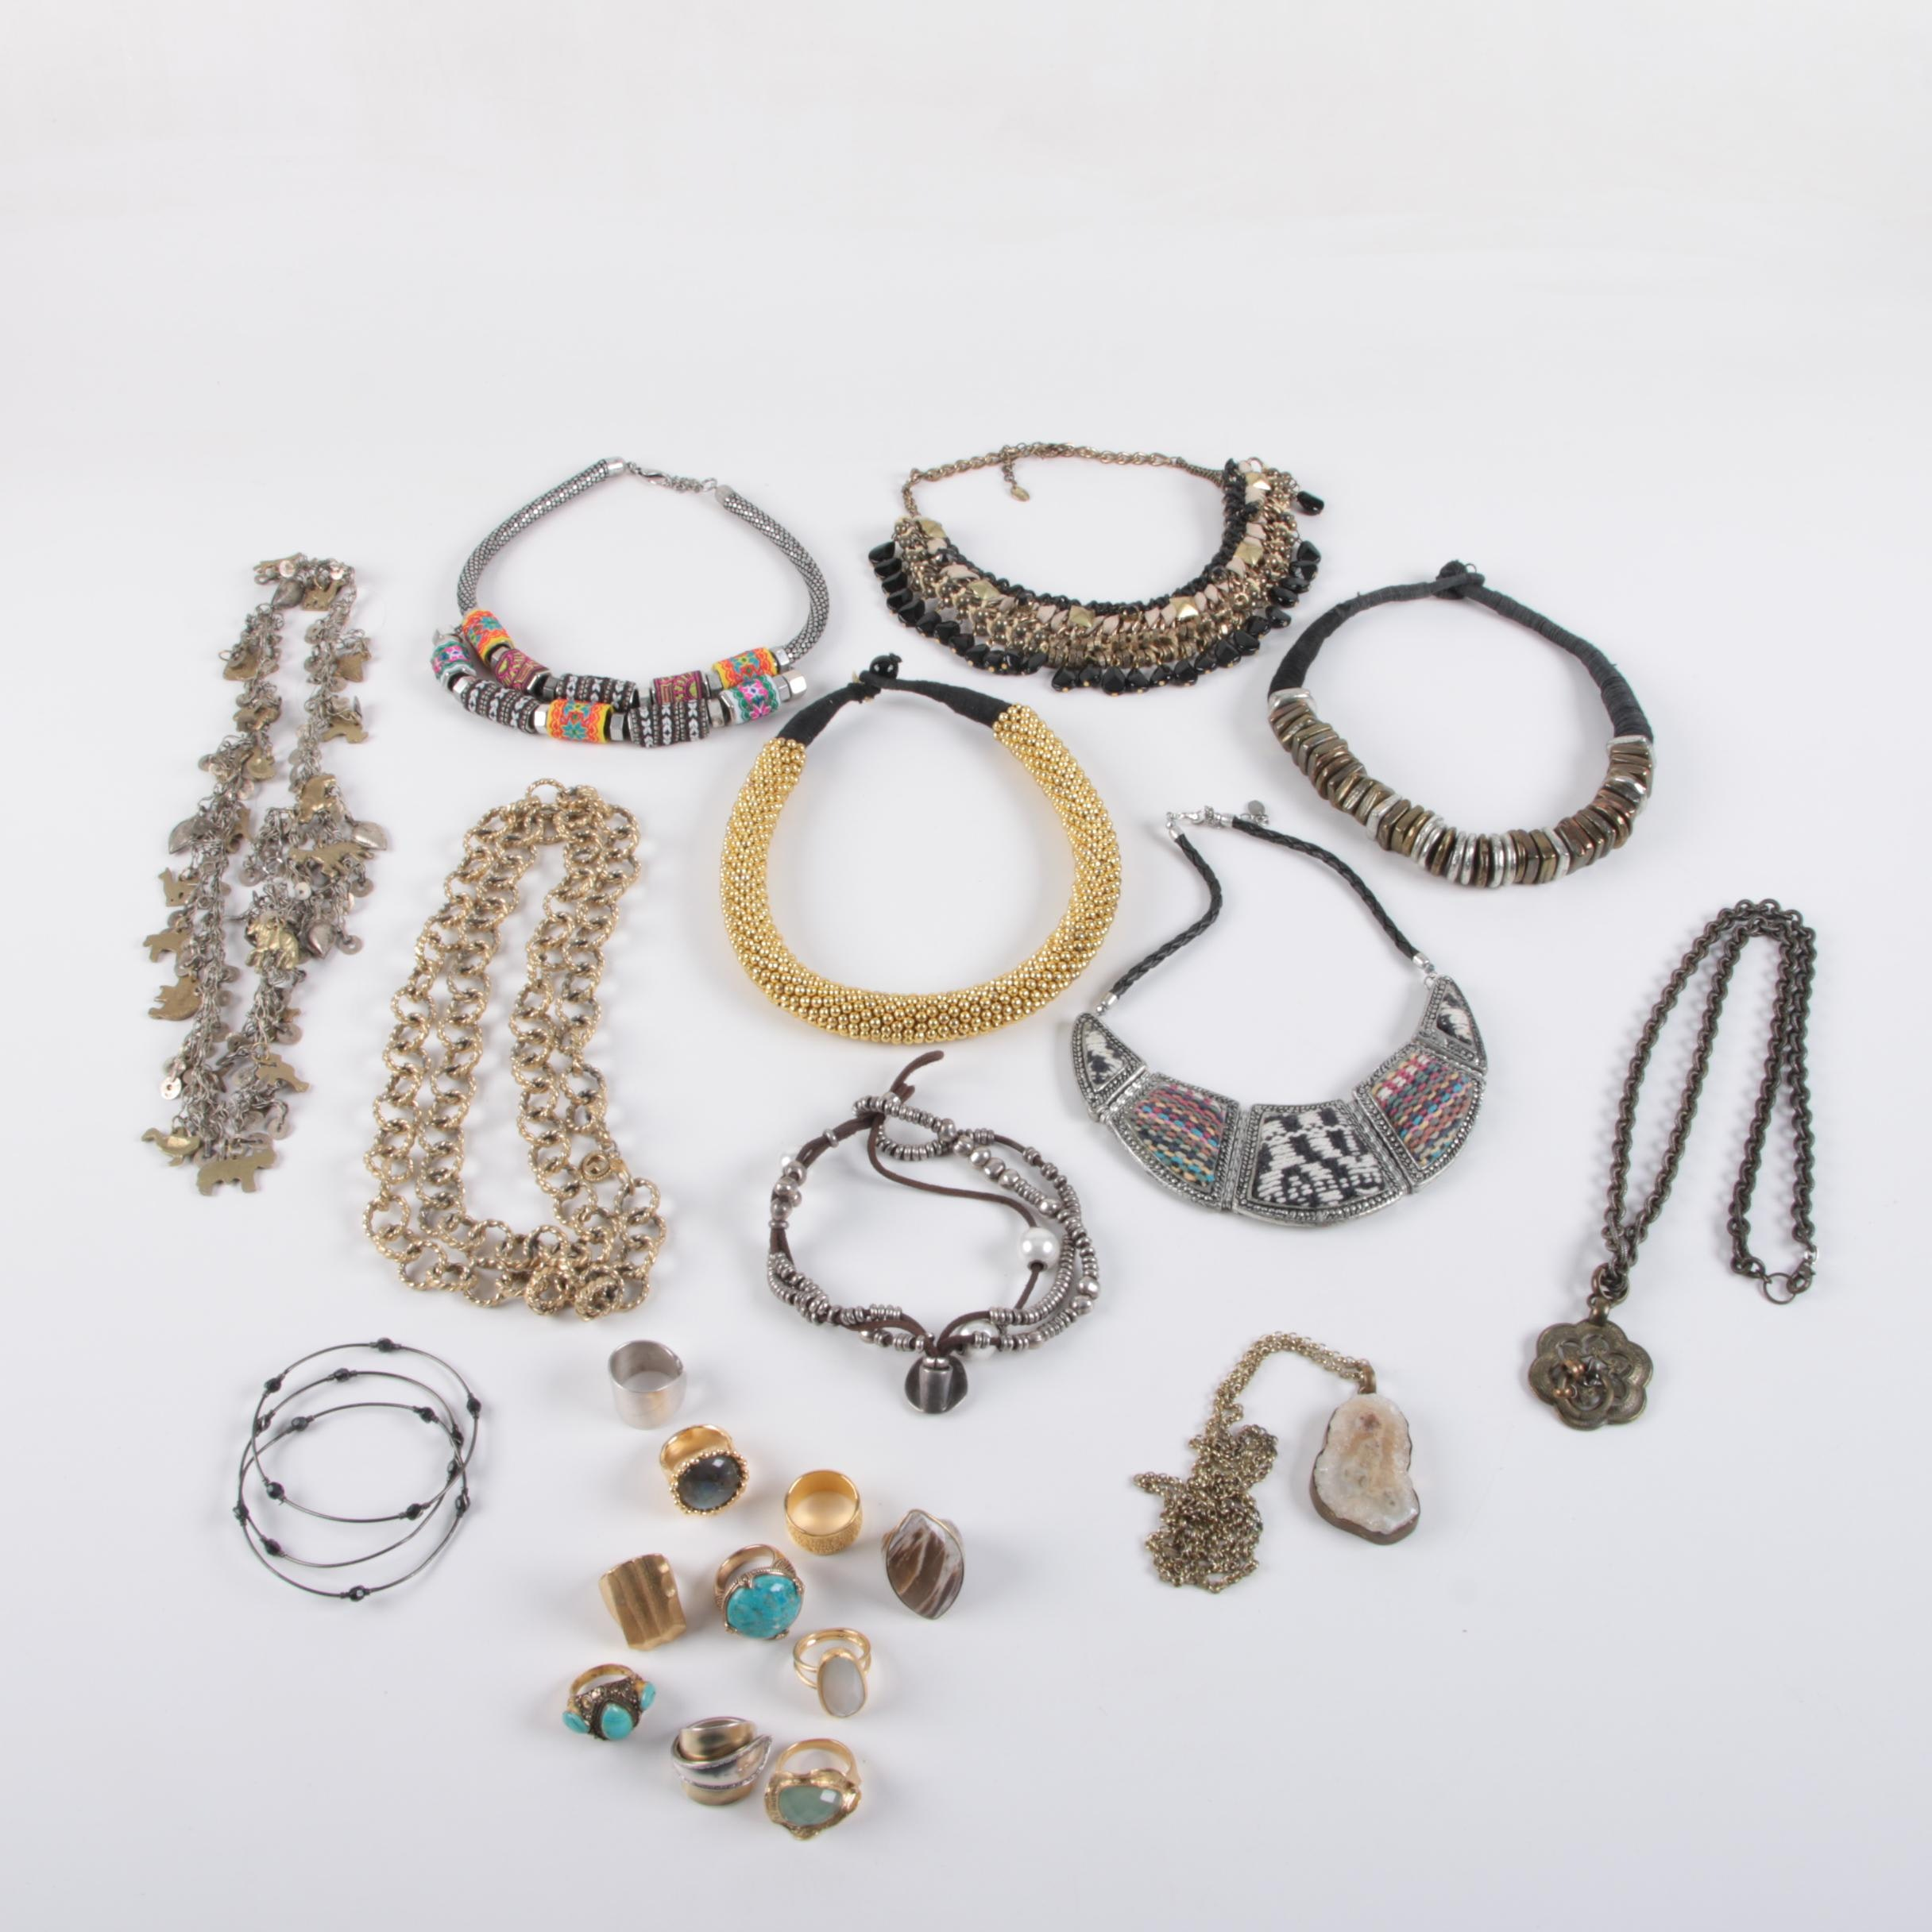 Jewelry Assortment Including Uno de 50 and Zara